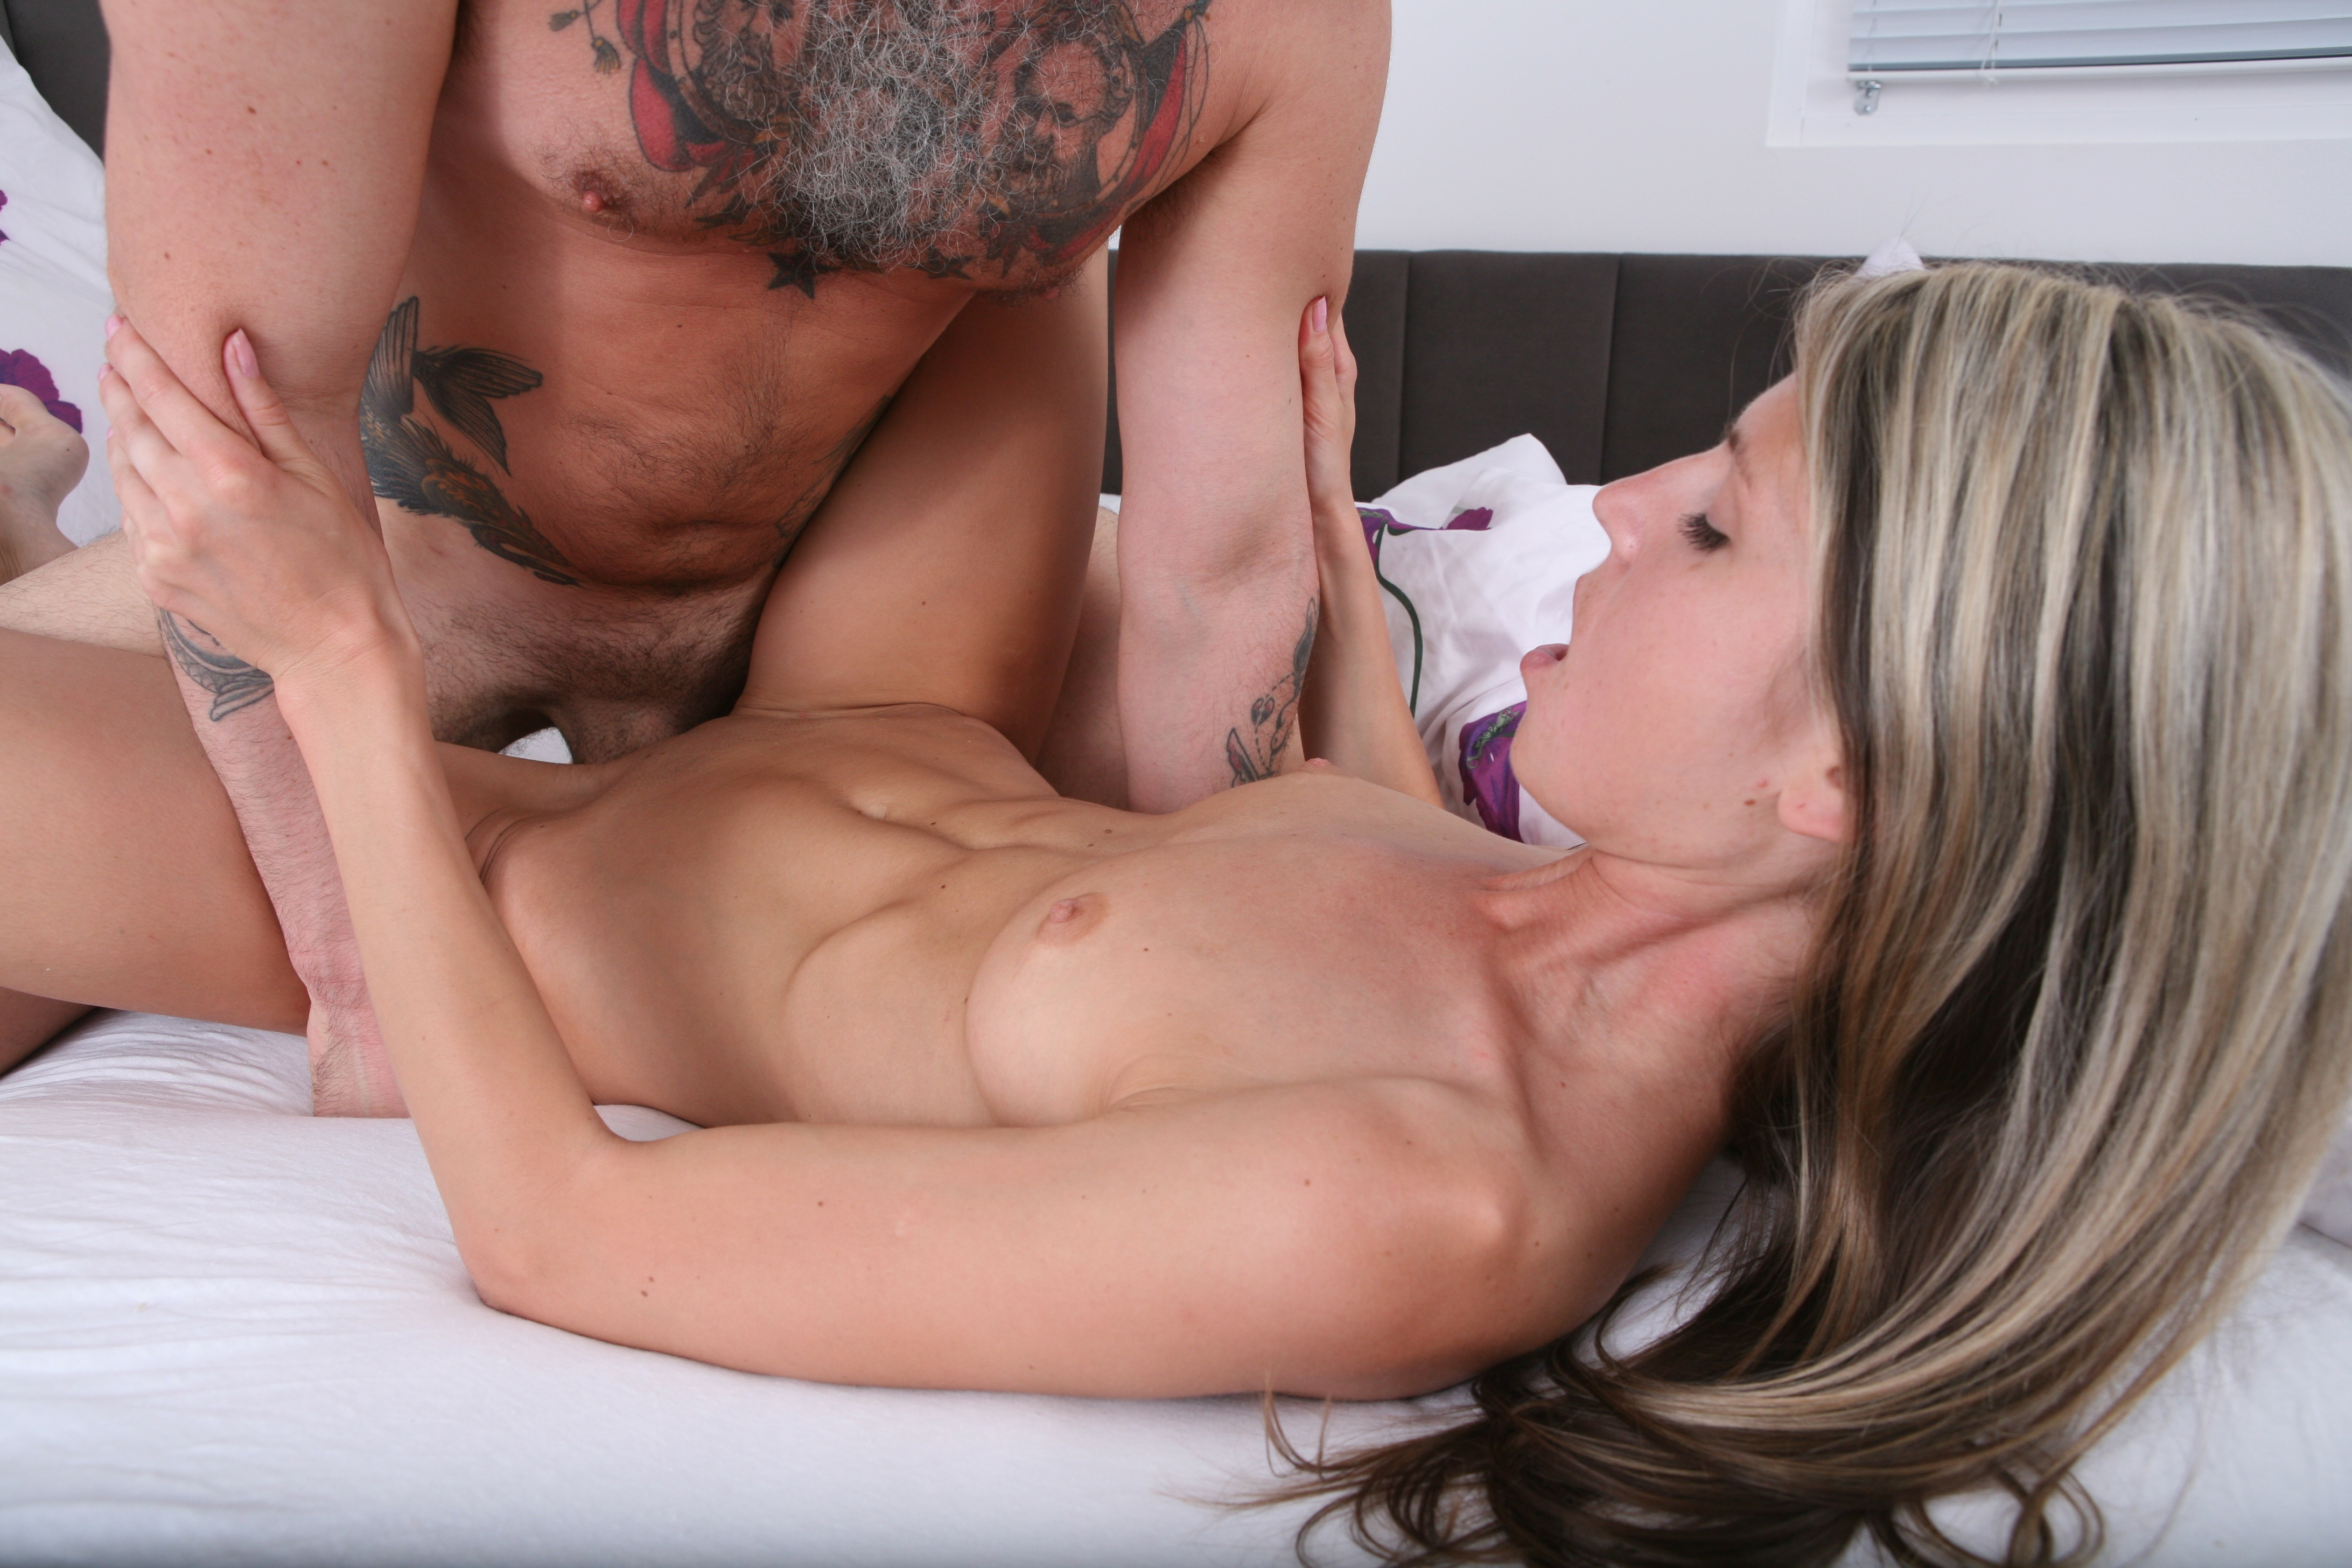 Couple Bangs Hard in Bed - Petite Hottie Rides Like a Cowgirl Gina Gerson